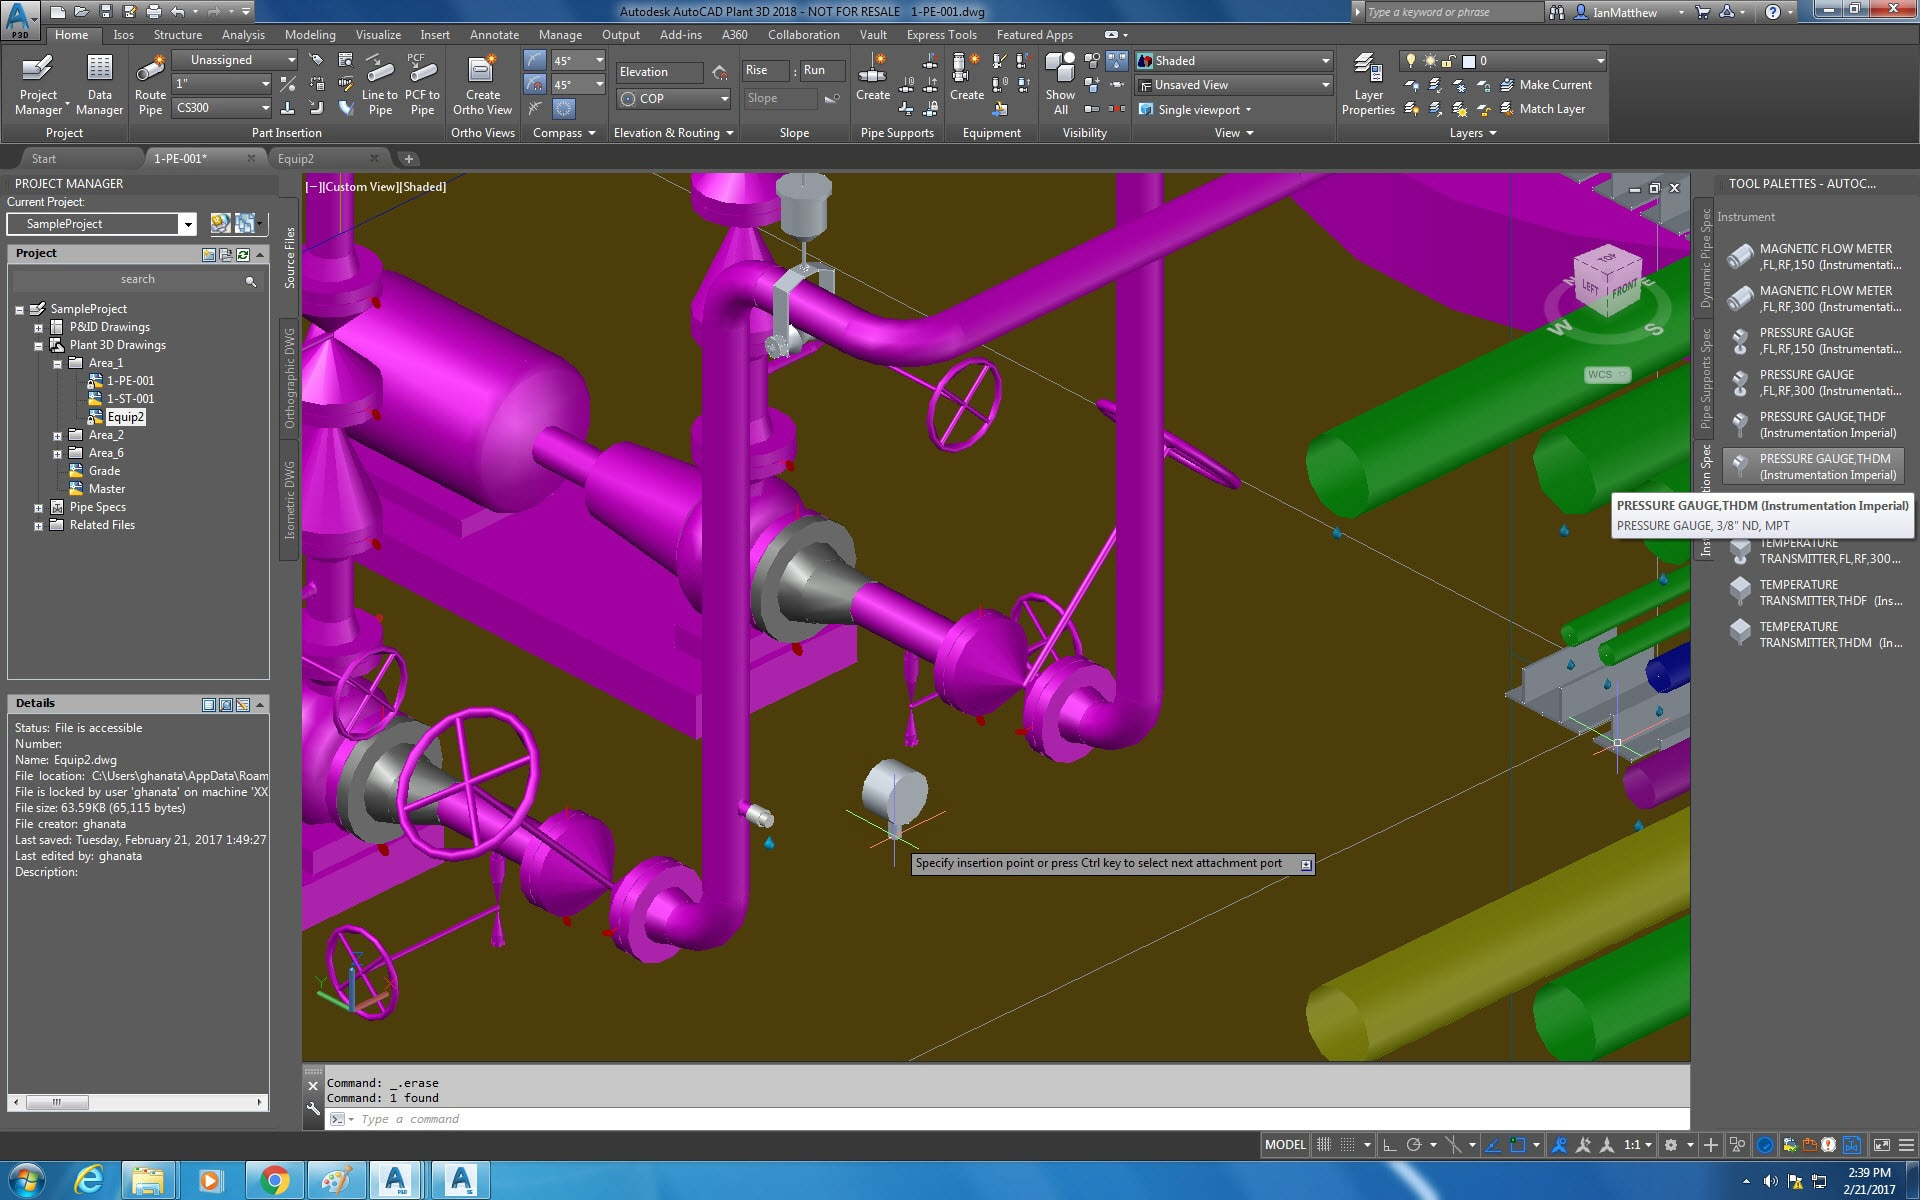 free tool to draw architecture diagram yamaha g1 golf cart solenoid wiring autocad plant 3d toolset | design software